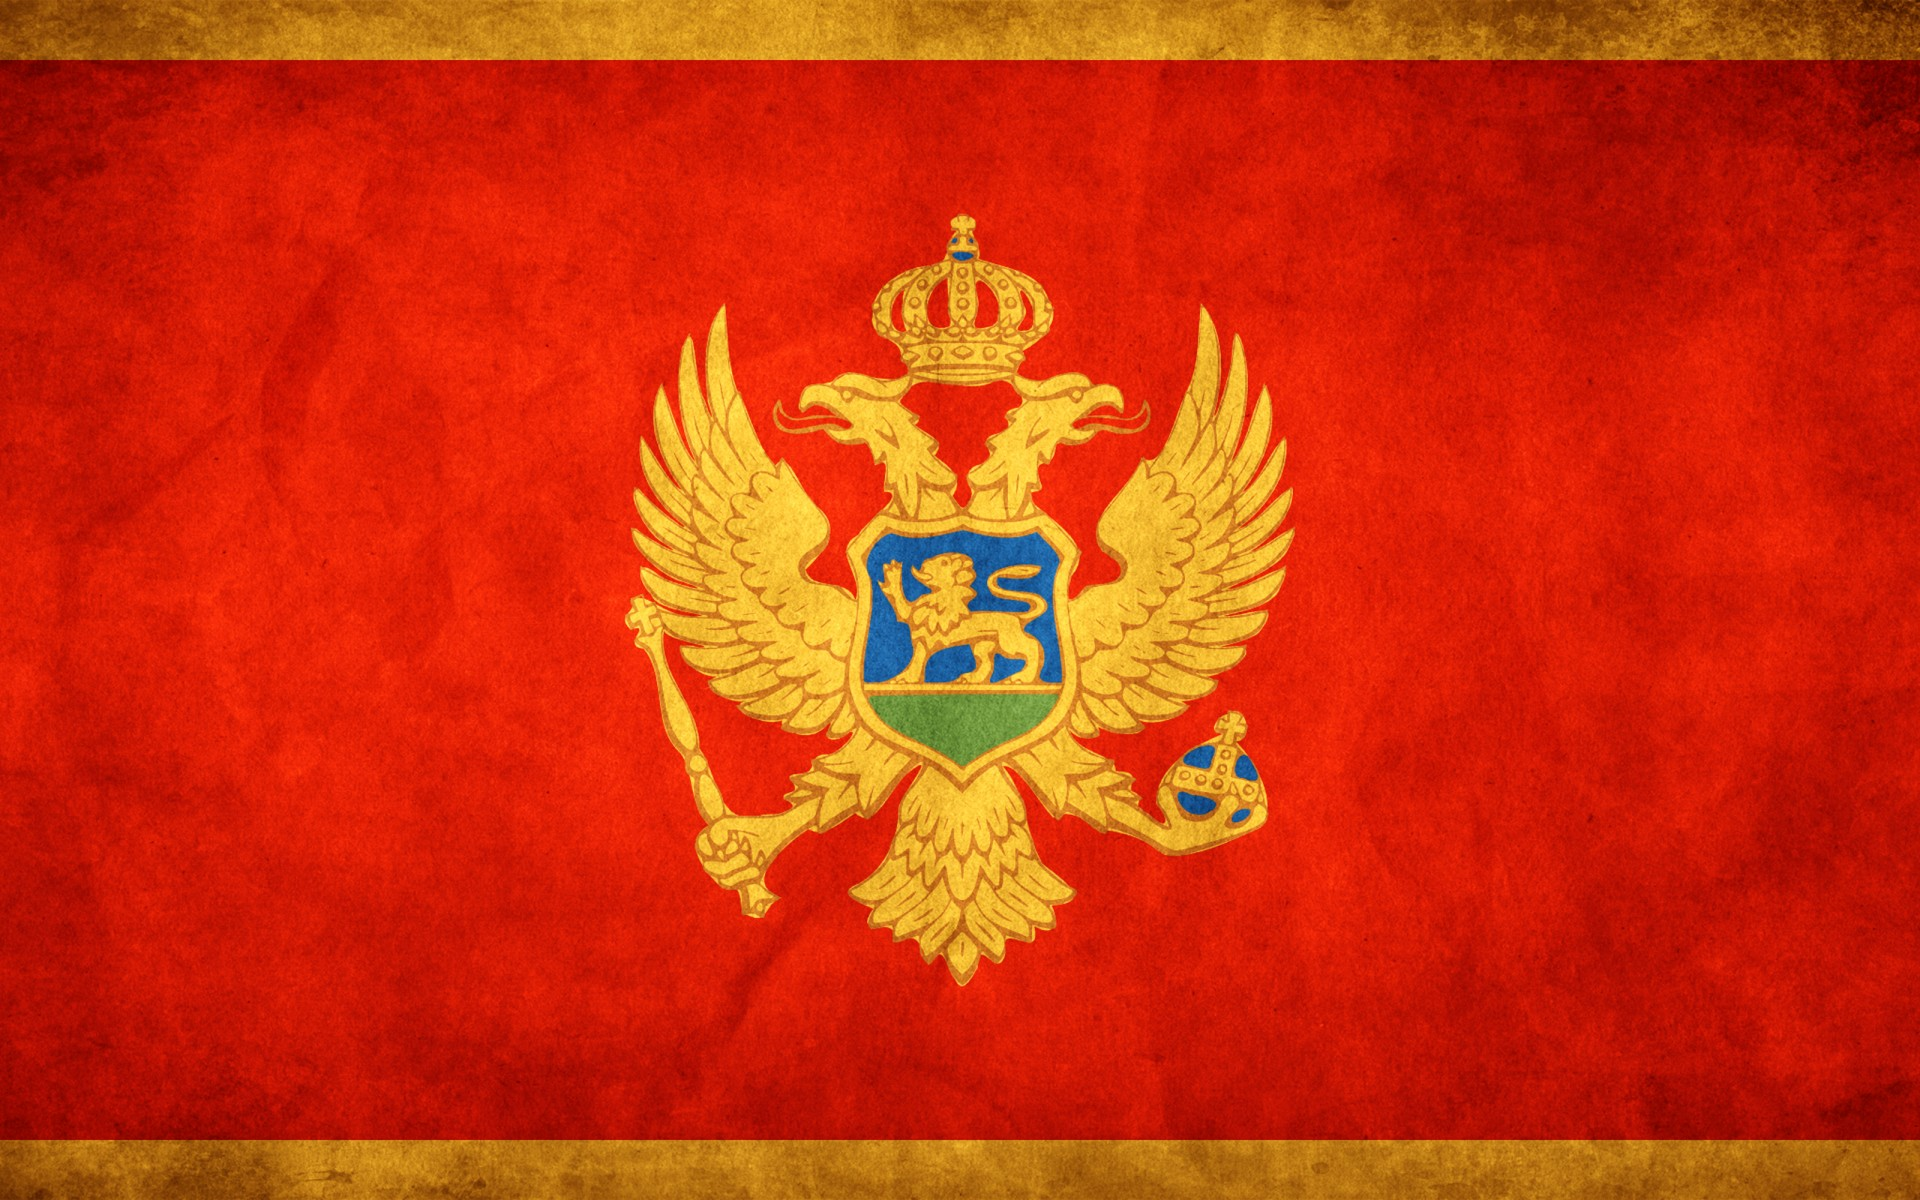 Puerto Rico Flag Wallpaper Hd 2 Flag Of Montenegro Hd Wallpapers Backgrounds